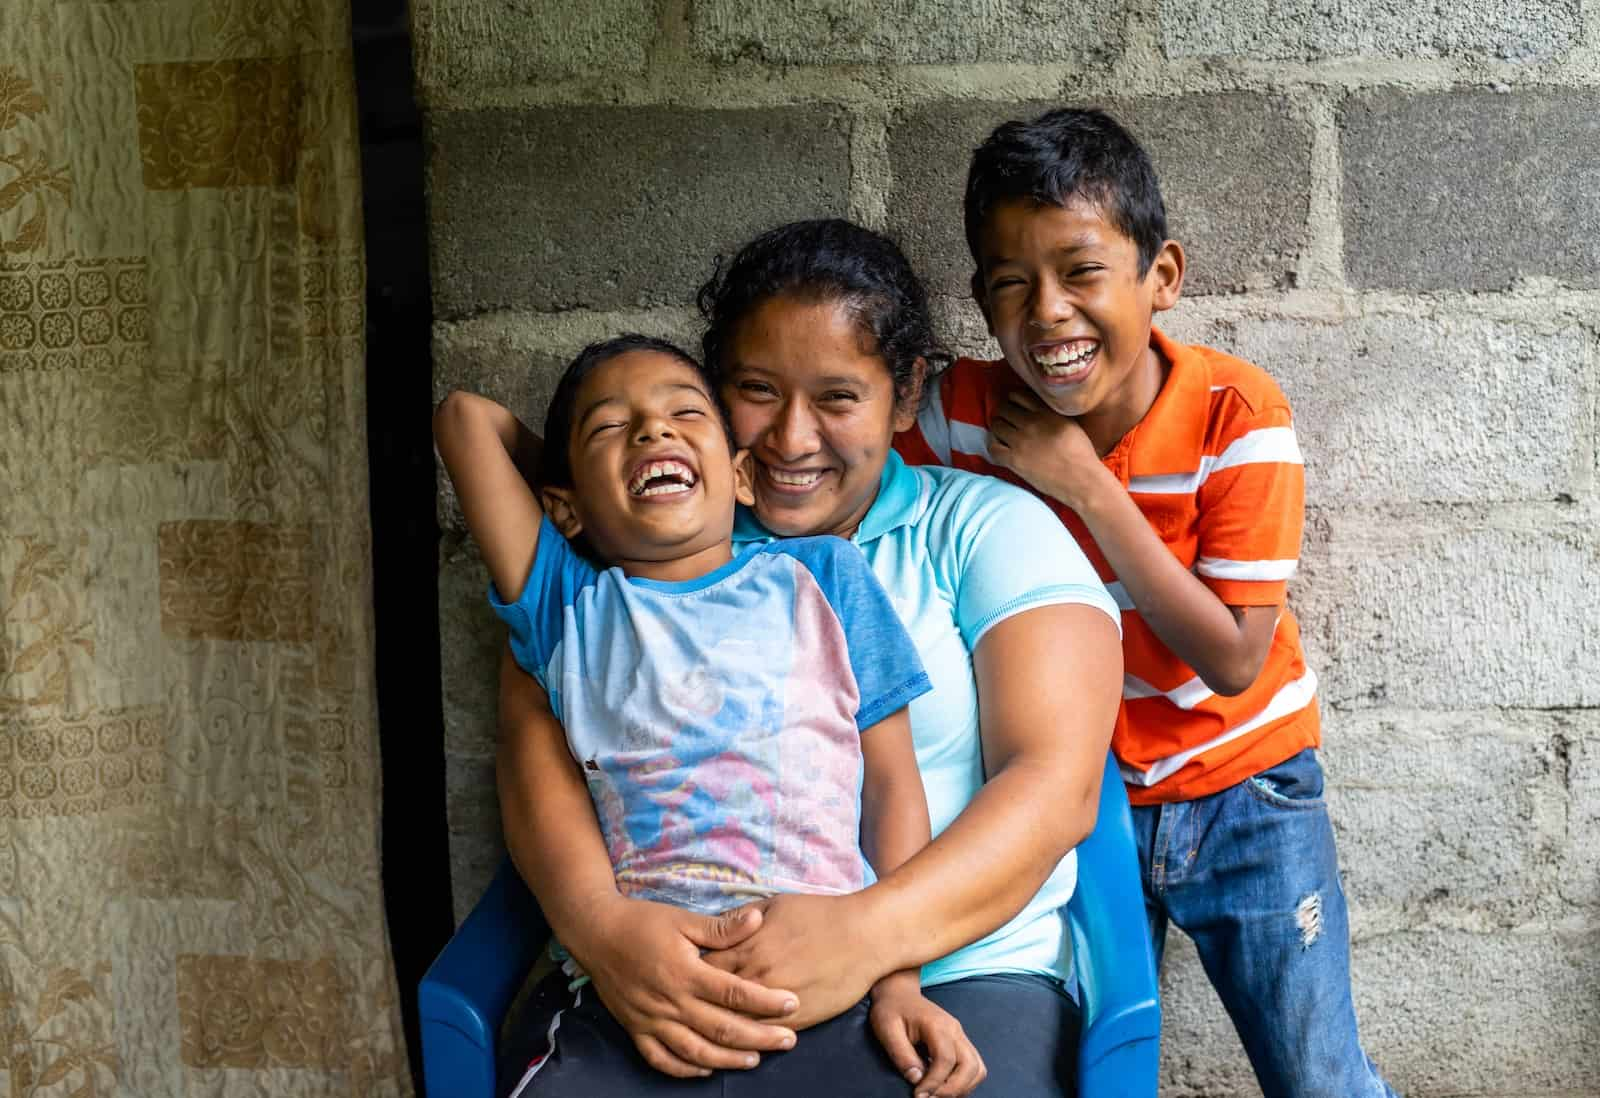 A woman holds a boy in her lap and a boy stands behind them, smiling.